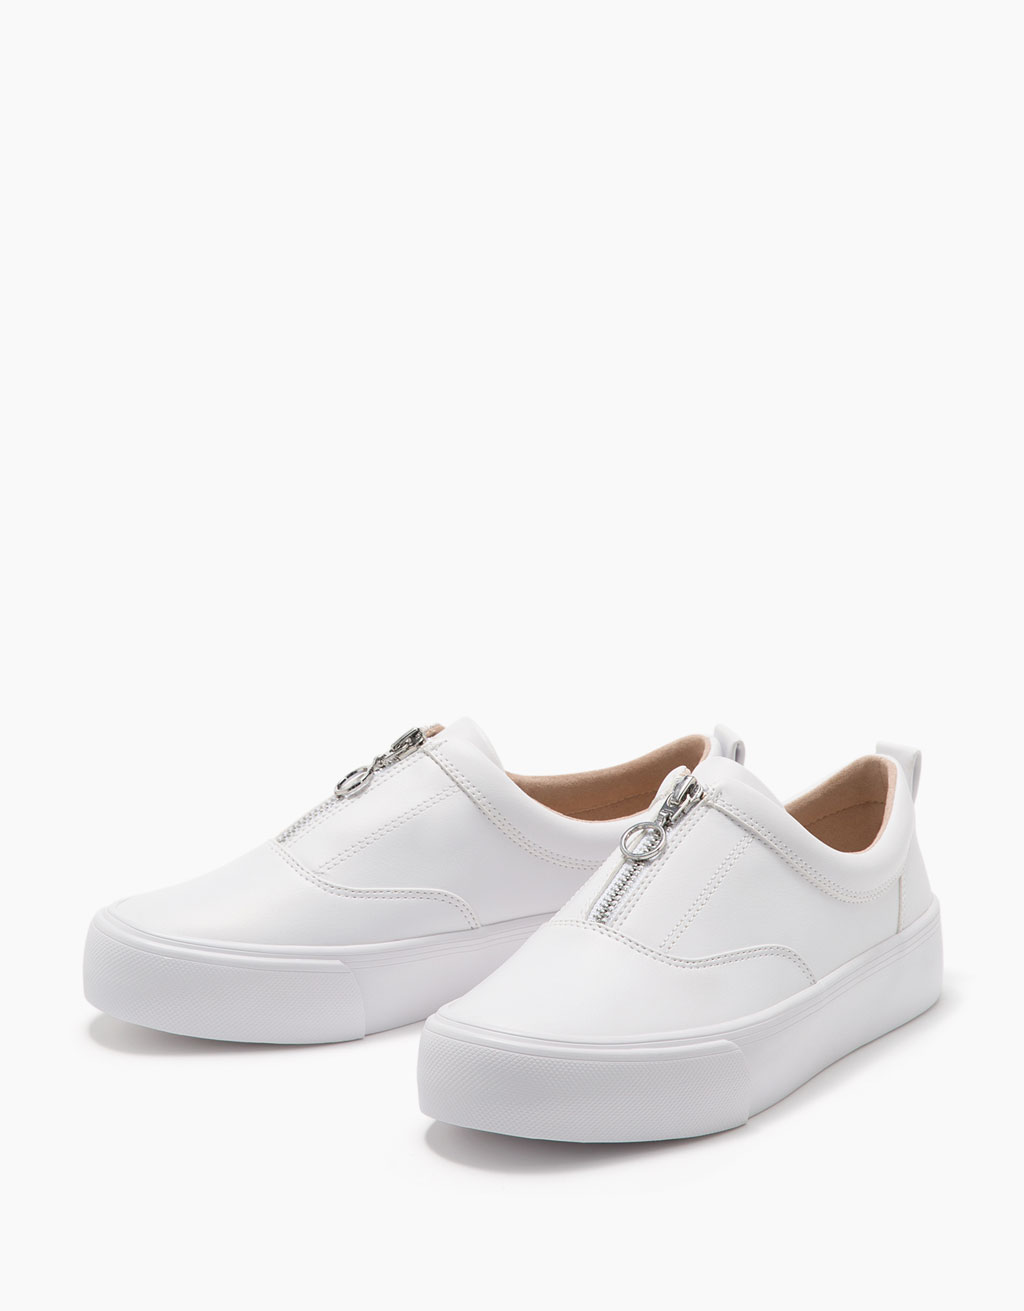 Single coloured sneakers with front zip